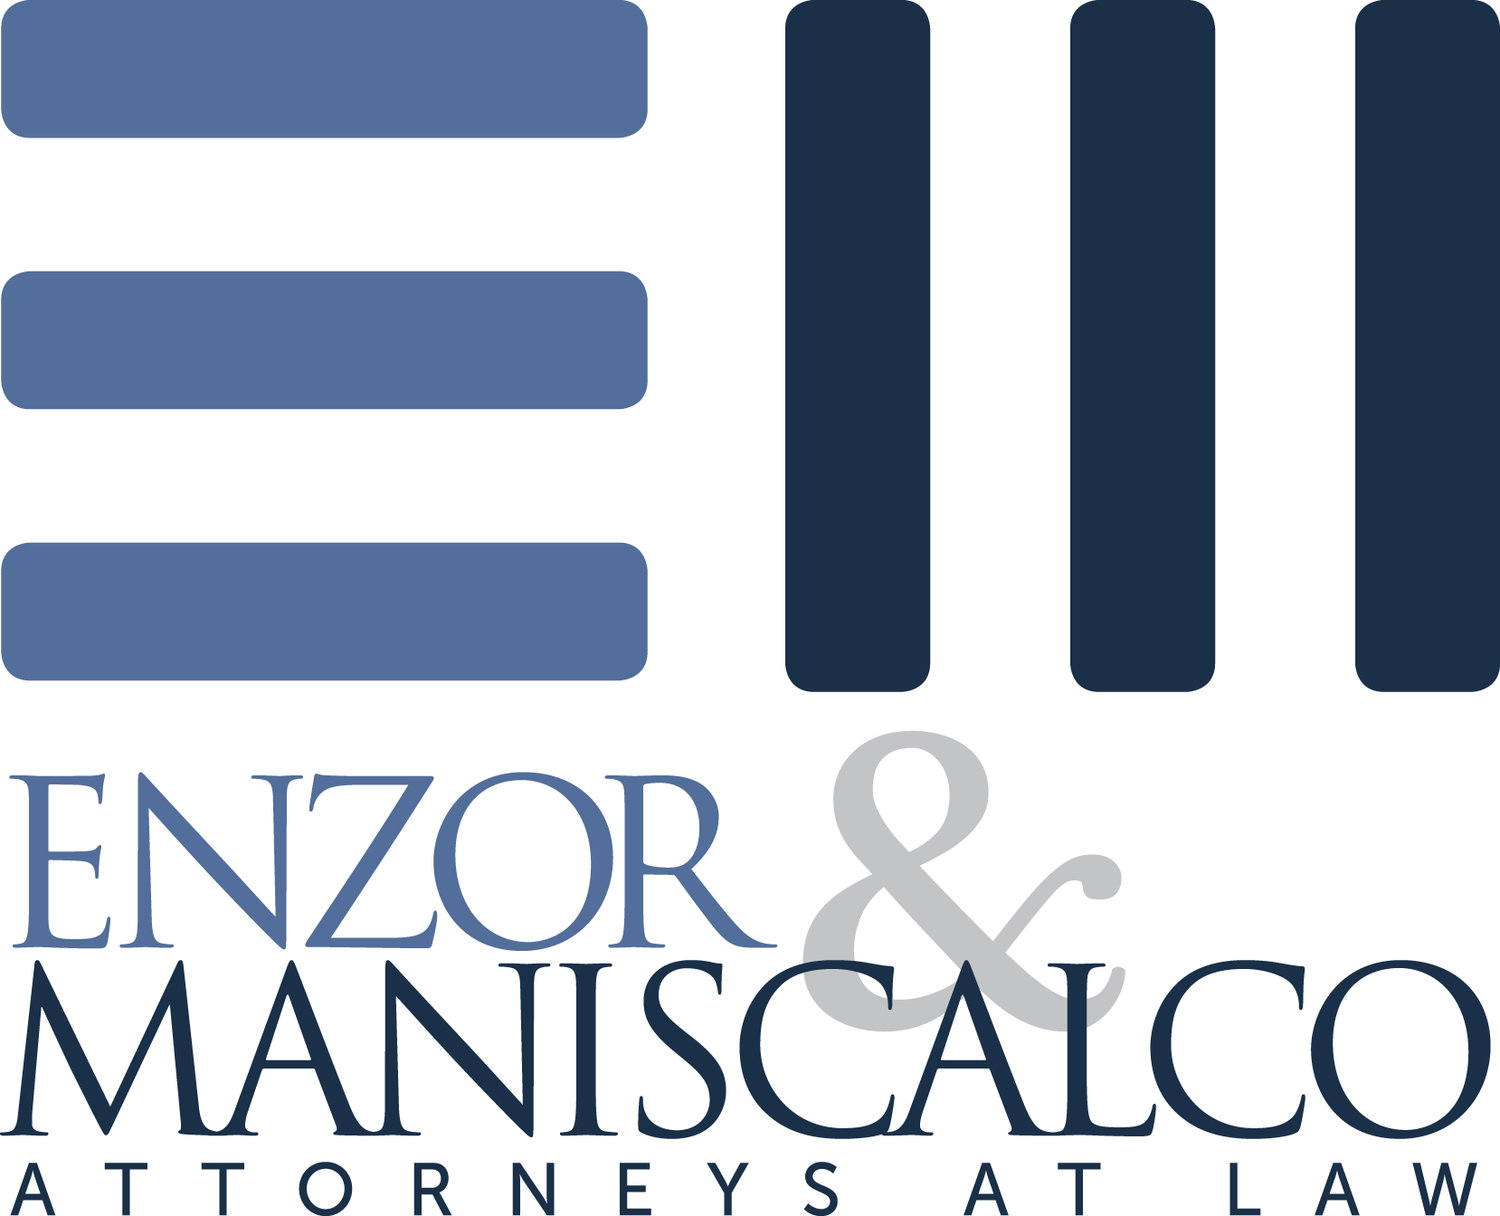 Enzor & Maniscalco, Alabama Attorneys At Law